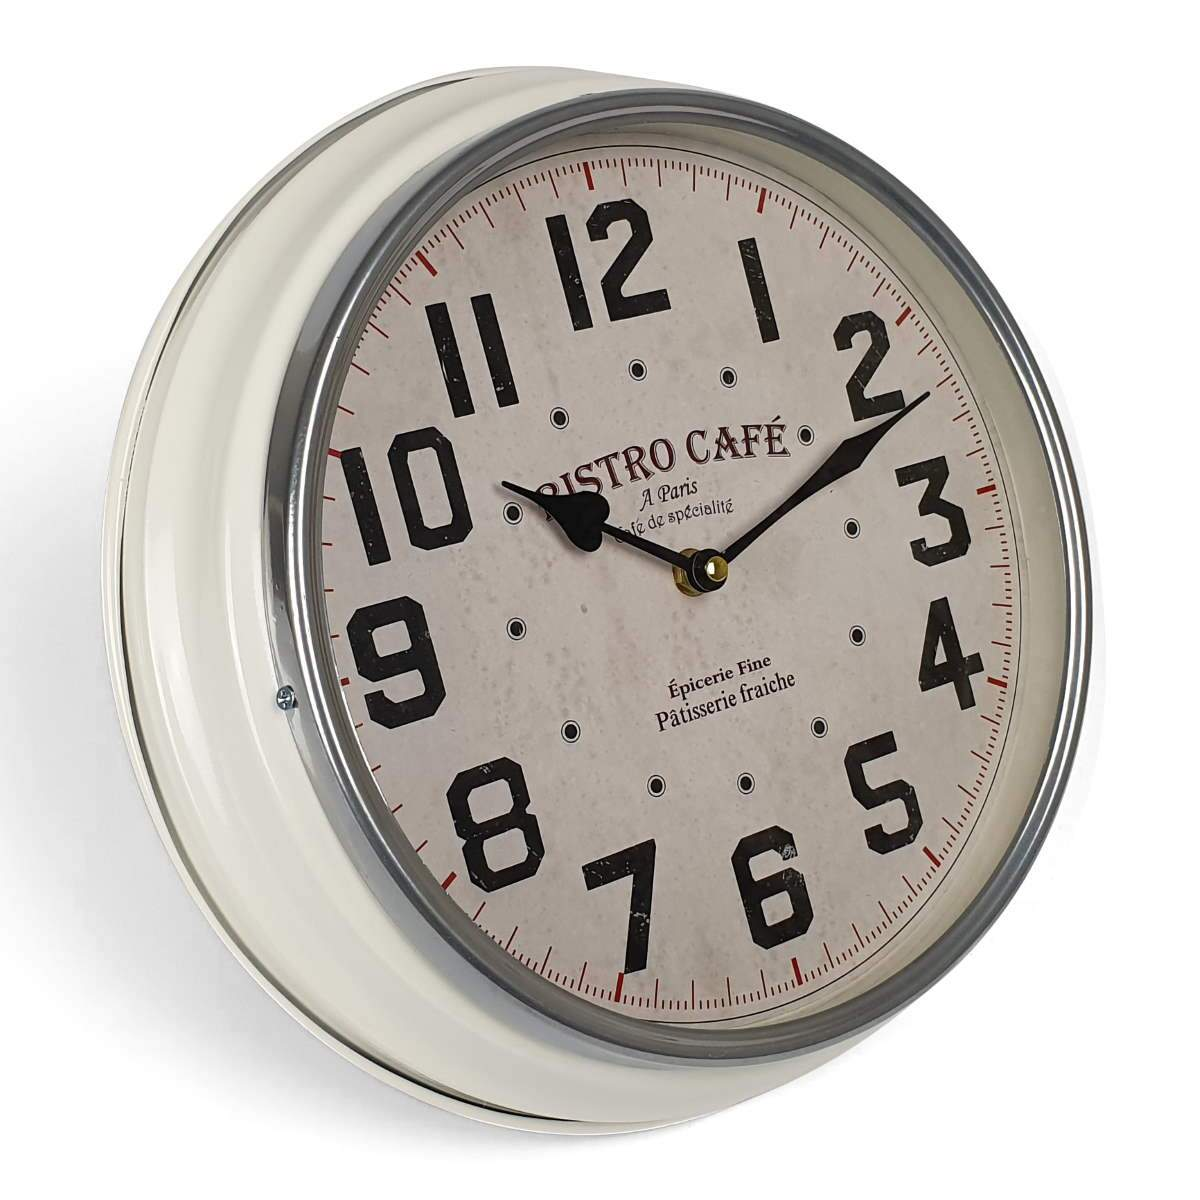 Victory Bistro Cafe Classic Metal Wall Clock White 31cm CHH 633 1